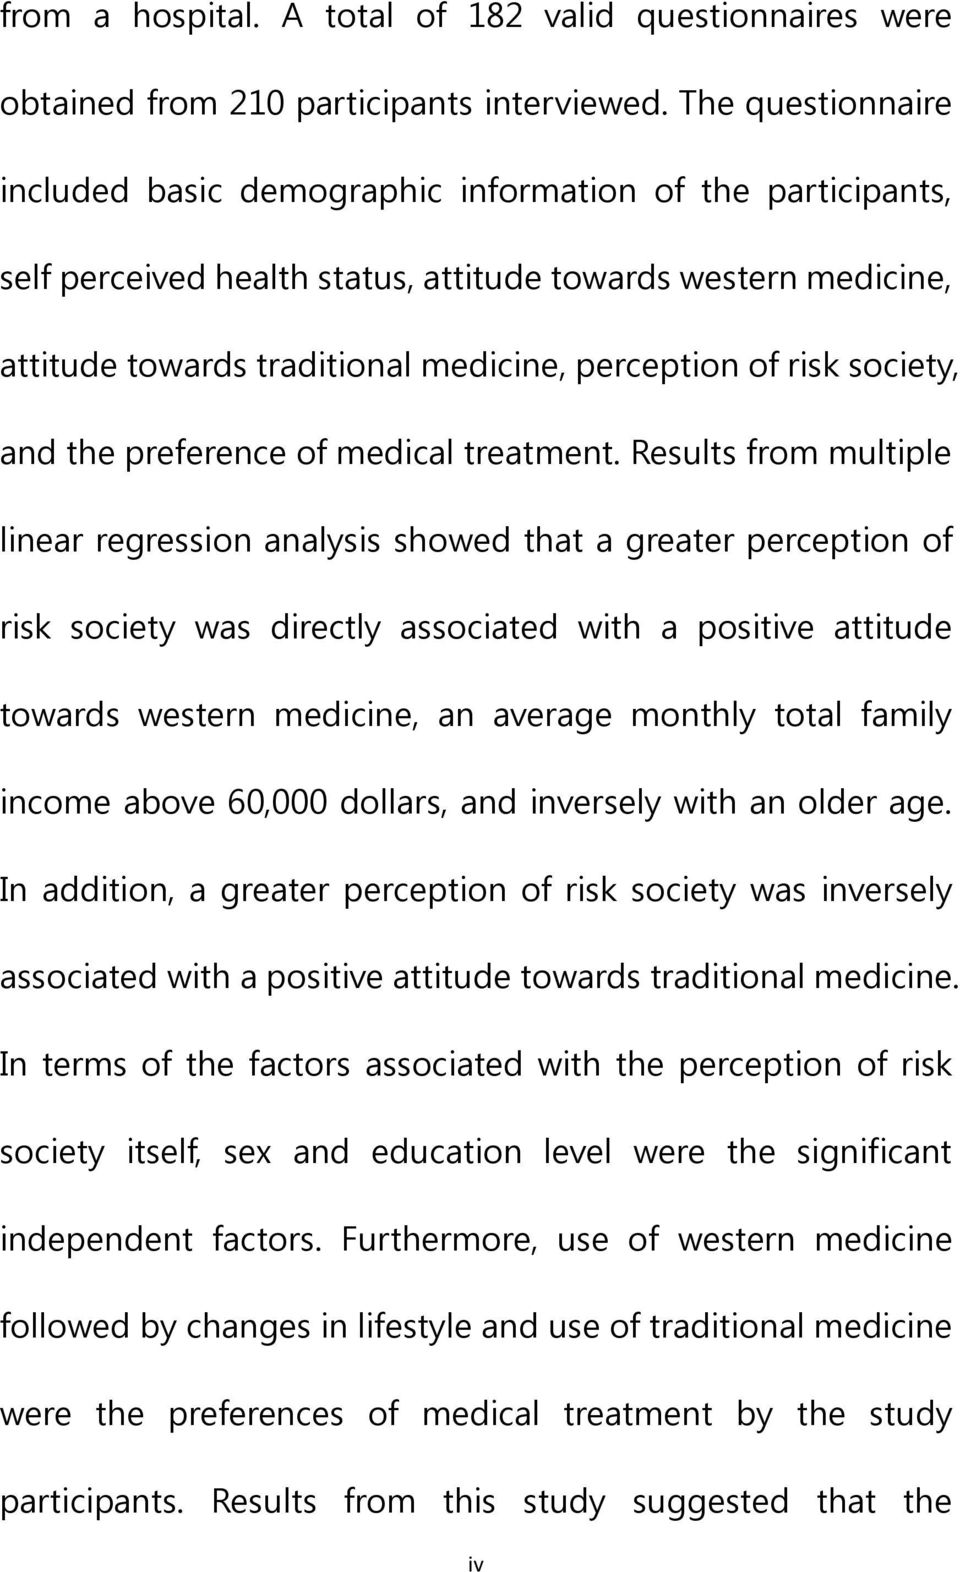 risk society, and the preference of medical treatment.